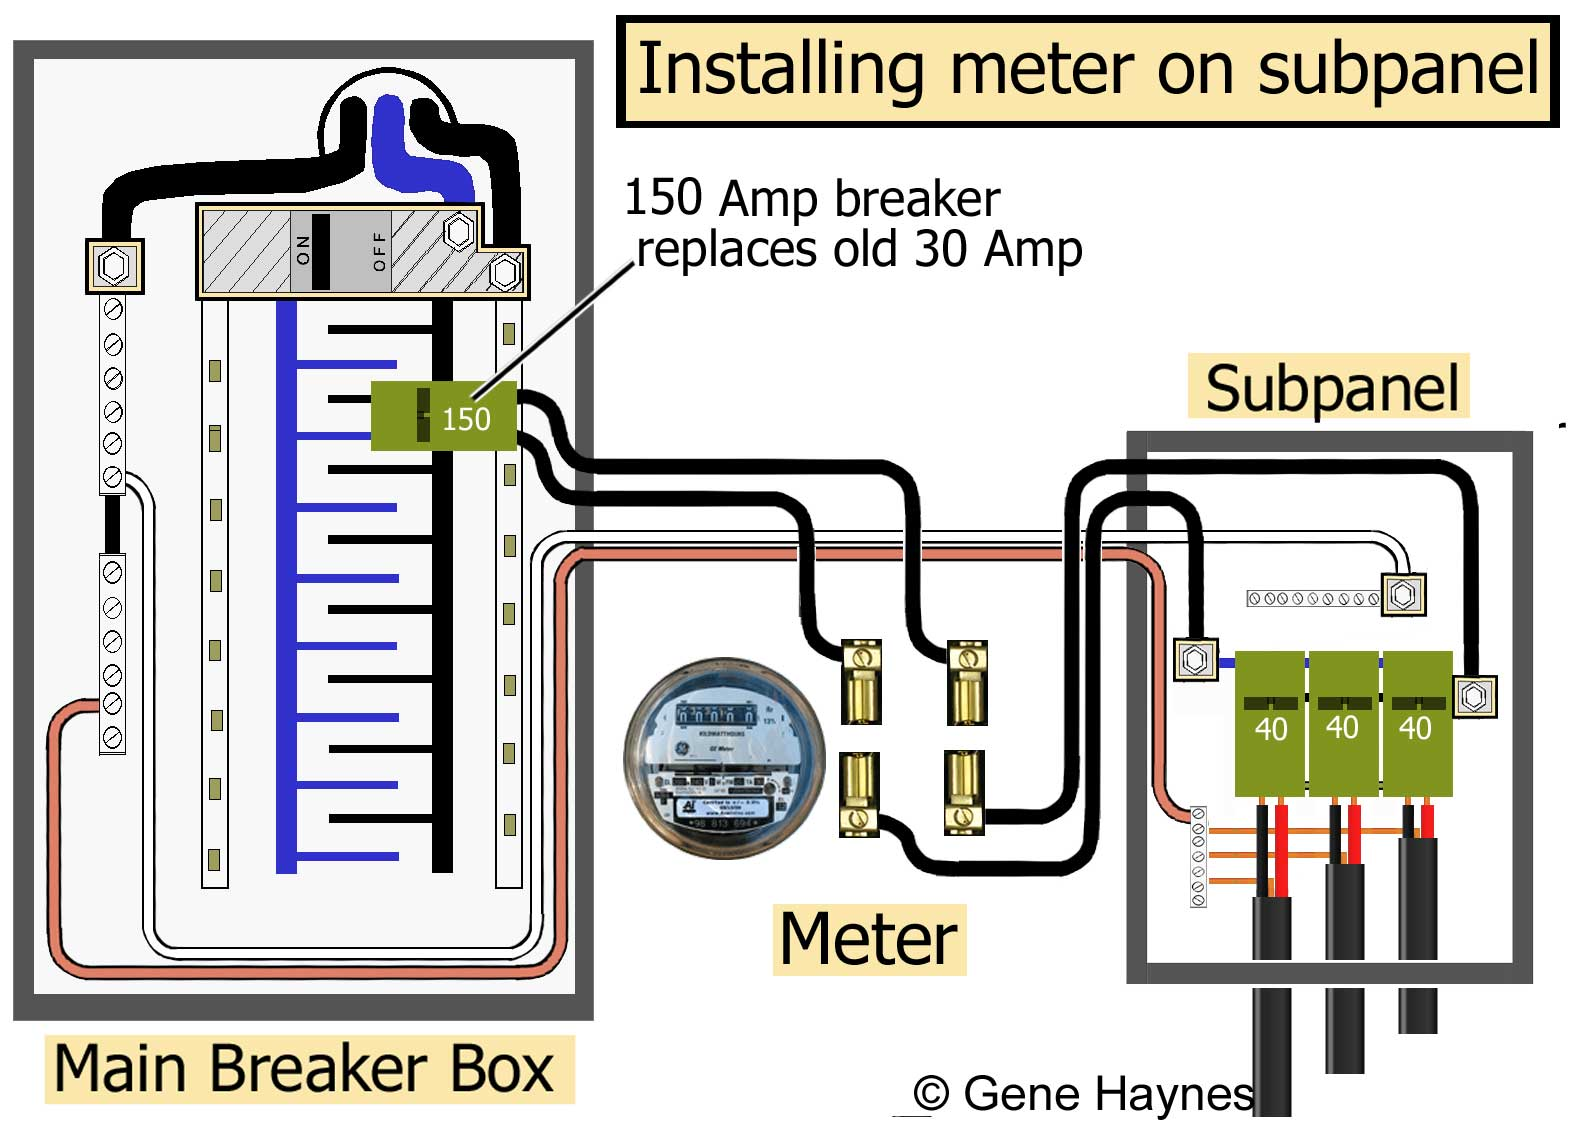 Main subpanel Tankless meter 600 how to wire tankless electric water heater 100 amp breaker box wiring diagram at gsmx.co